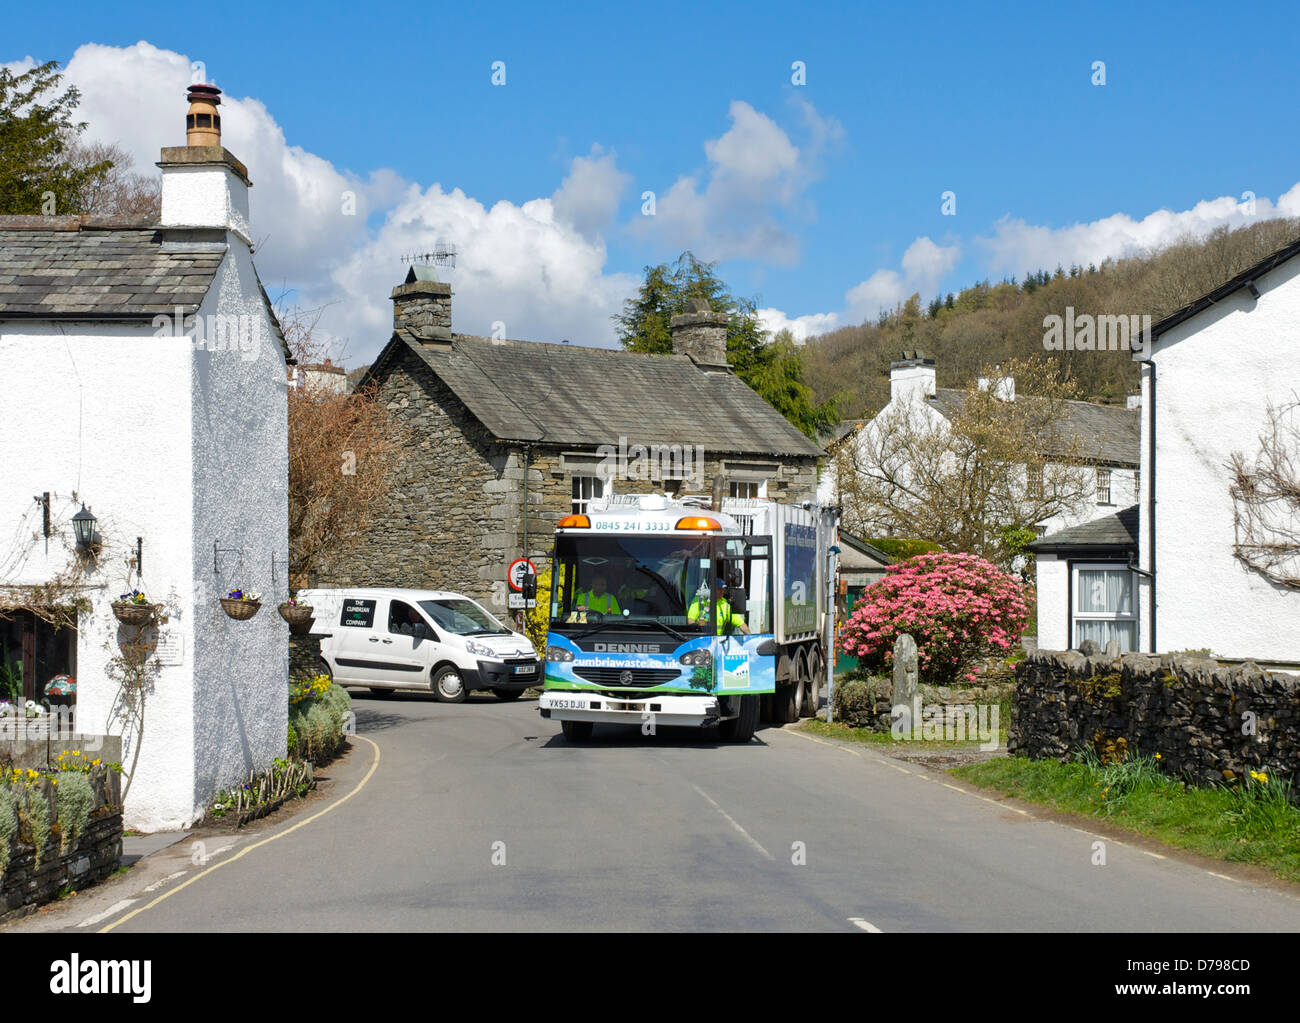 Refuse collection in the village of Near Sawrey, Lake District National Park, Cumbria, England UK - Stock Image